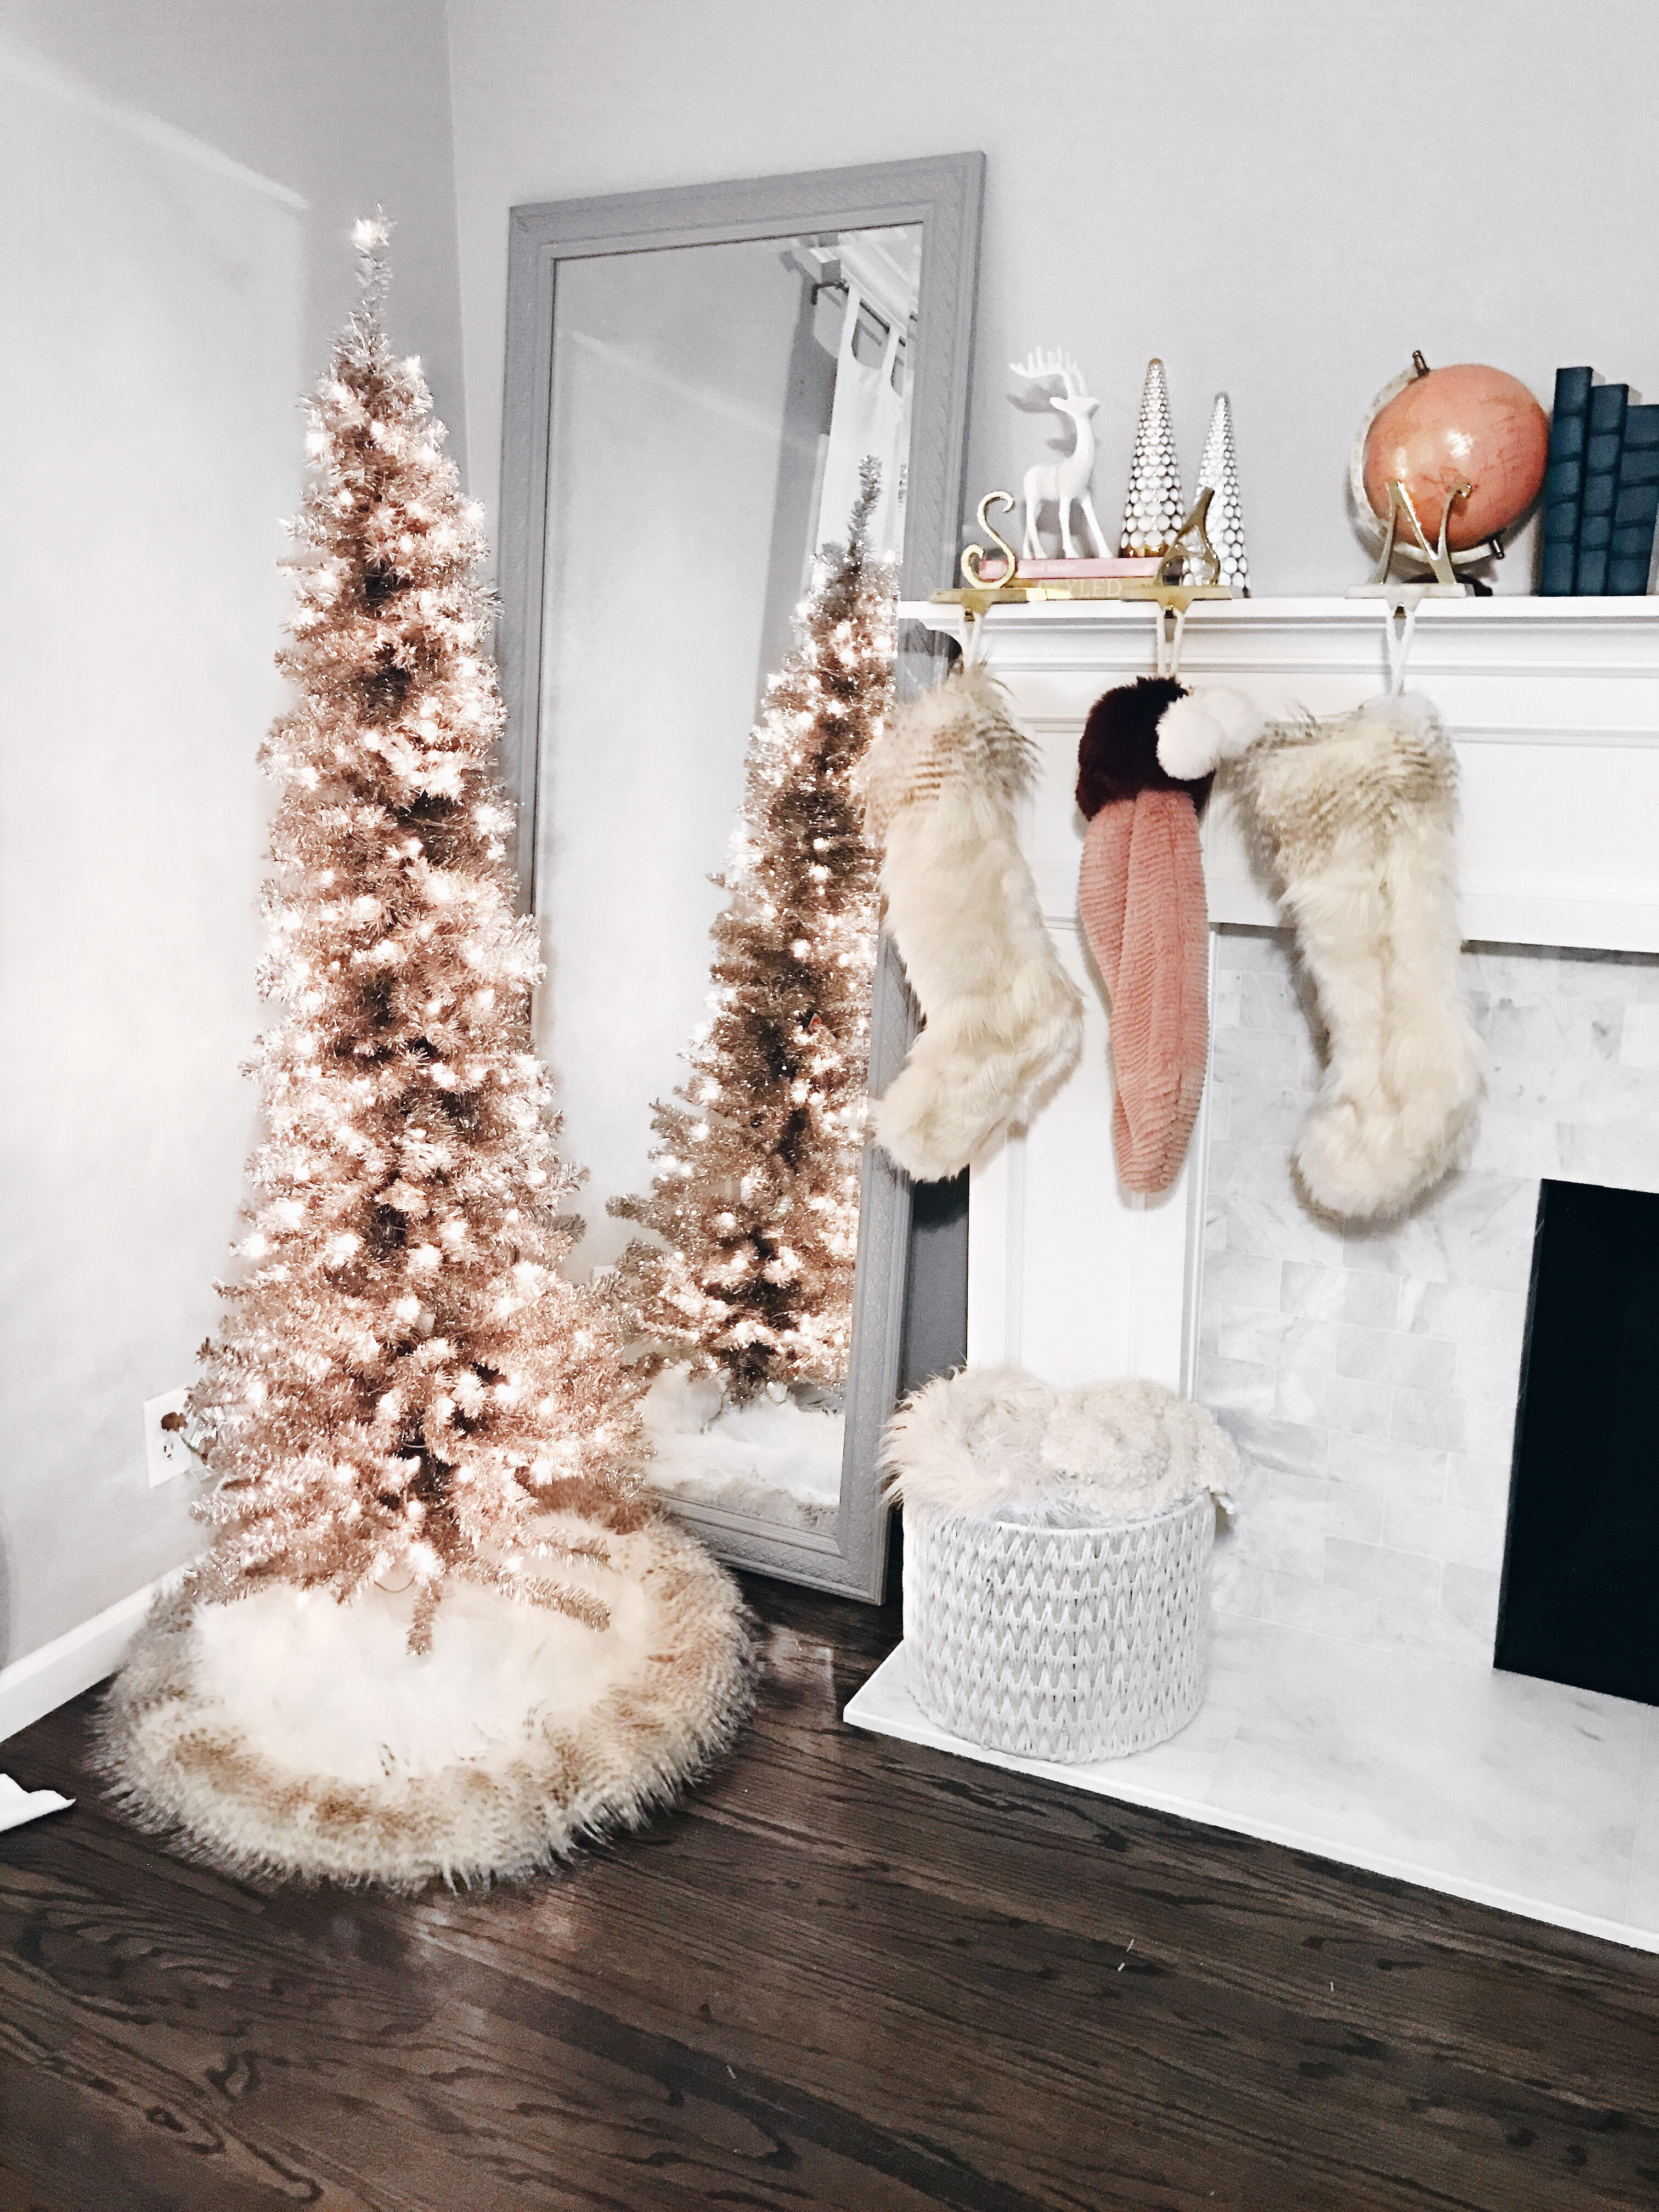 STOCKING STUFFERS Ideas for Everyone by San Francisco style blogger For the Love